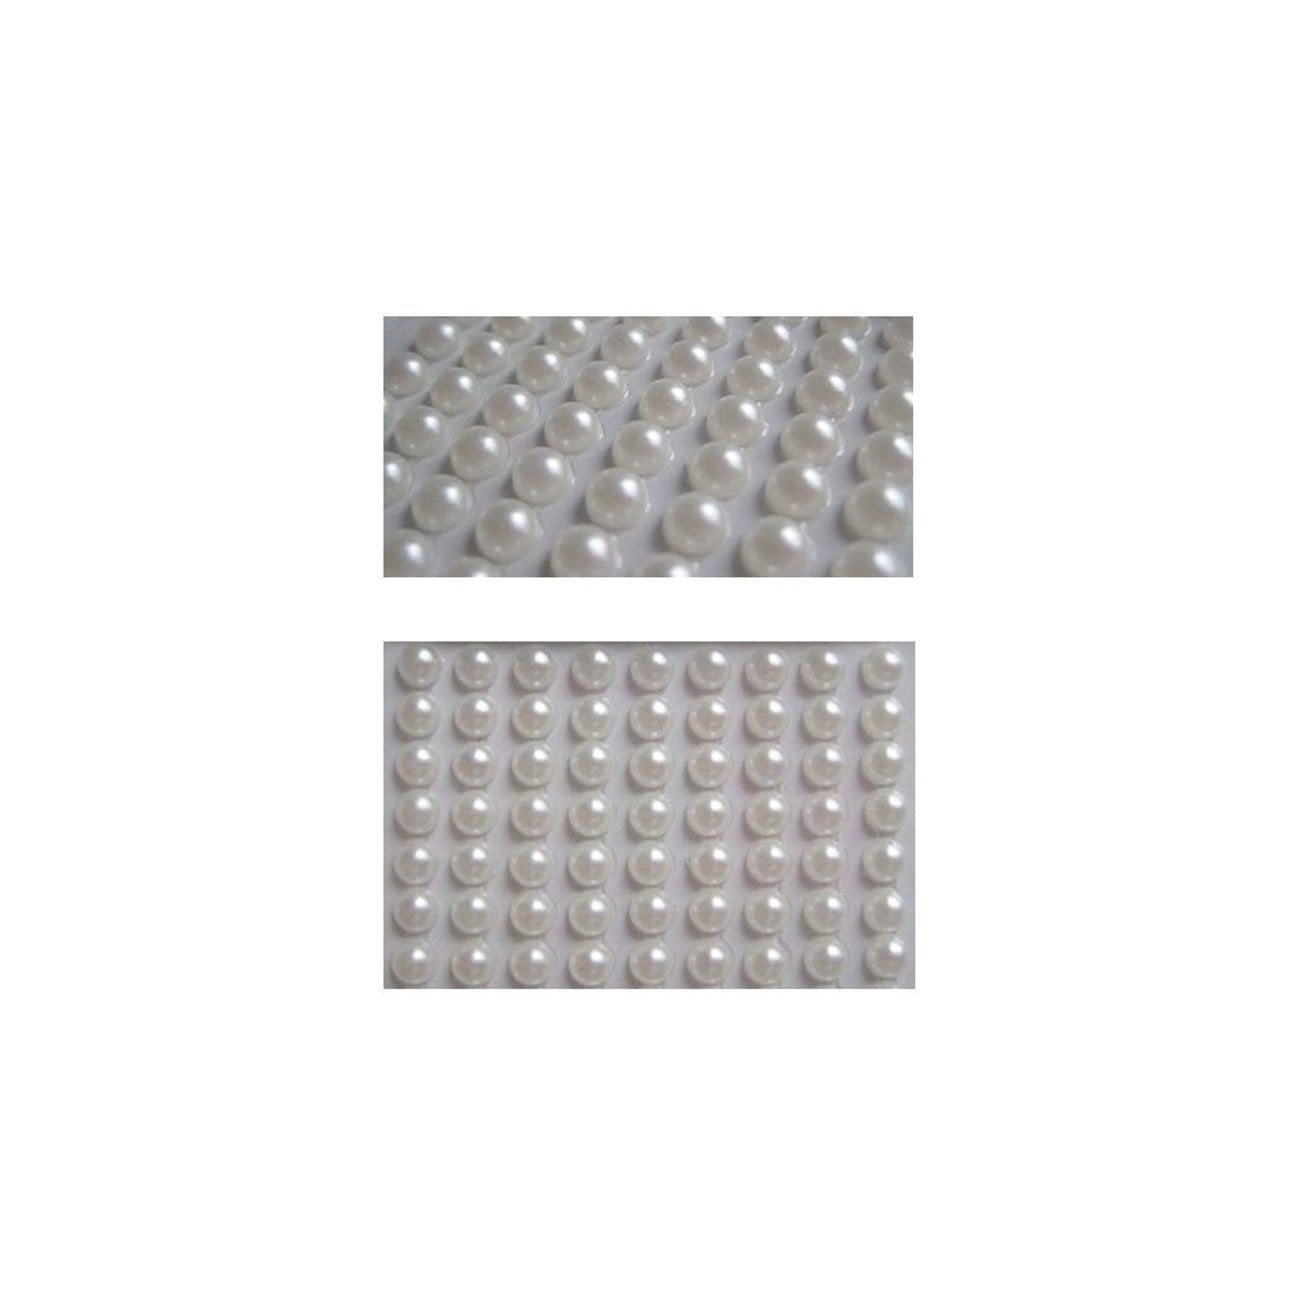 Wrapables 4mm Self Adhesive Pearl Stickers, 1000pcs